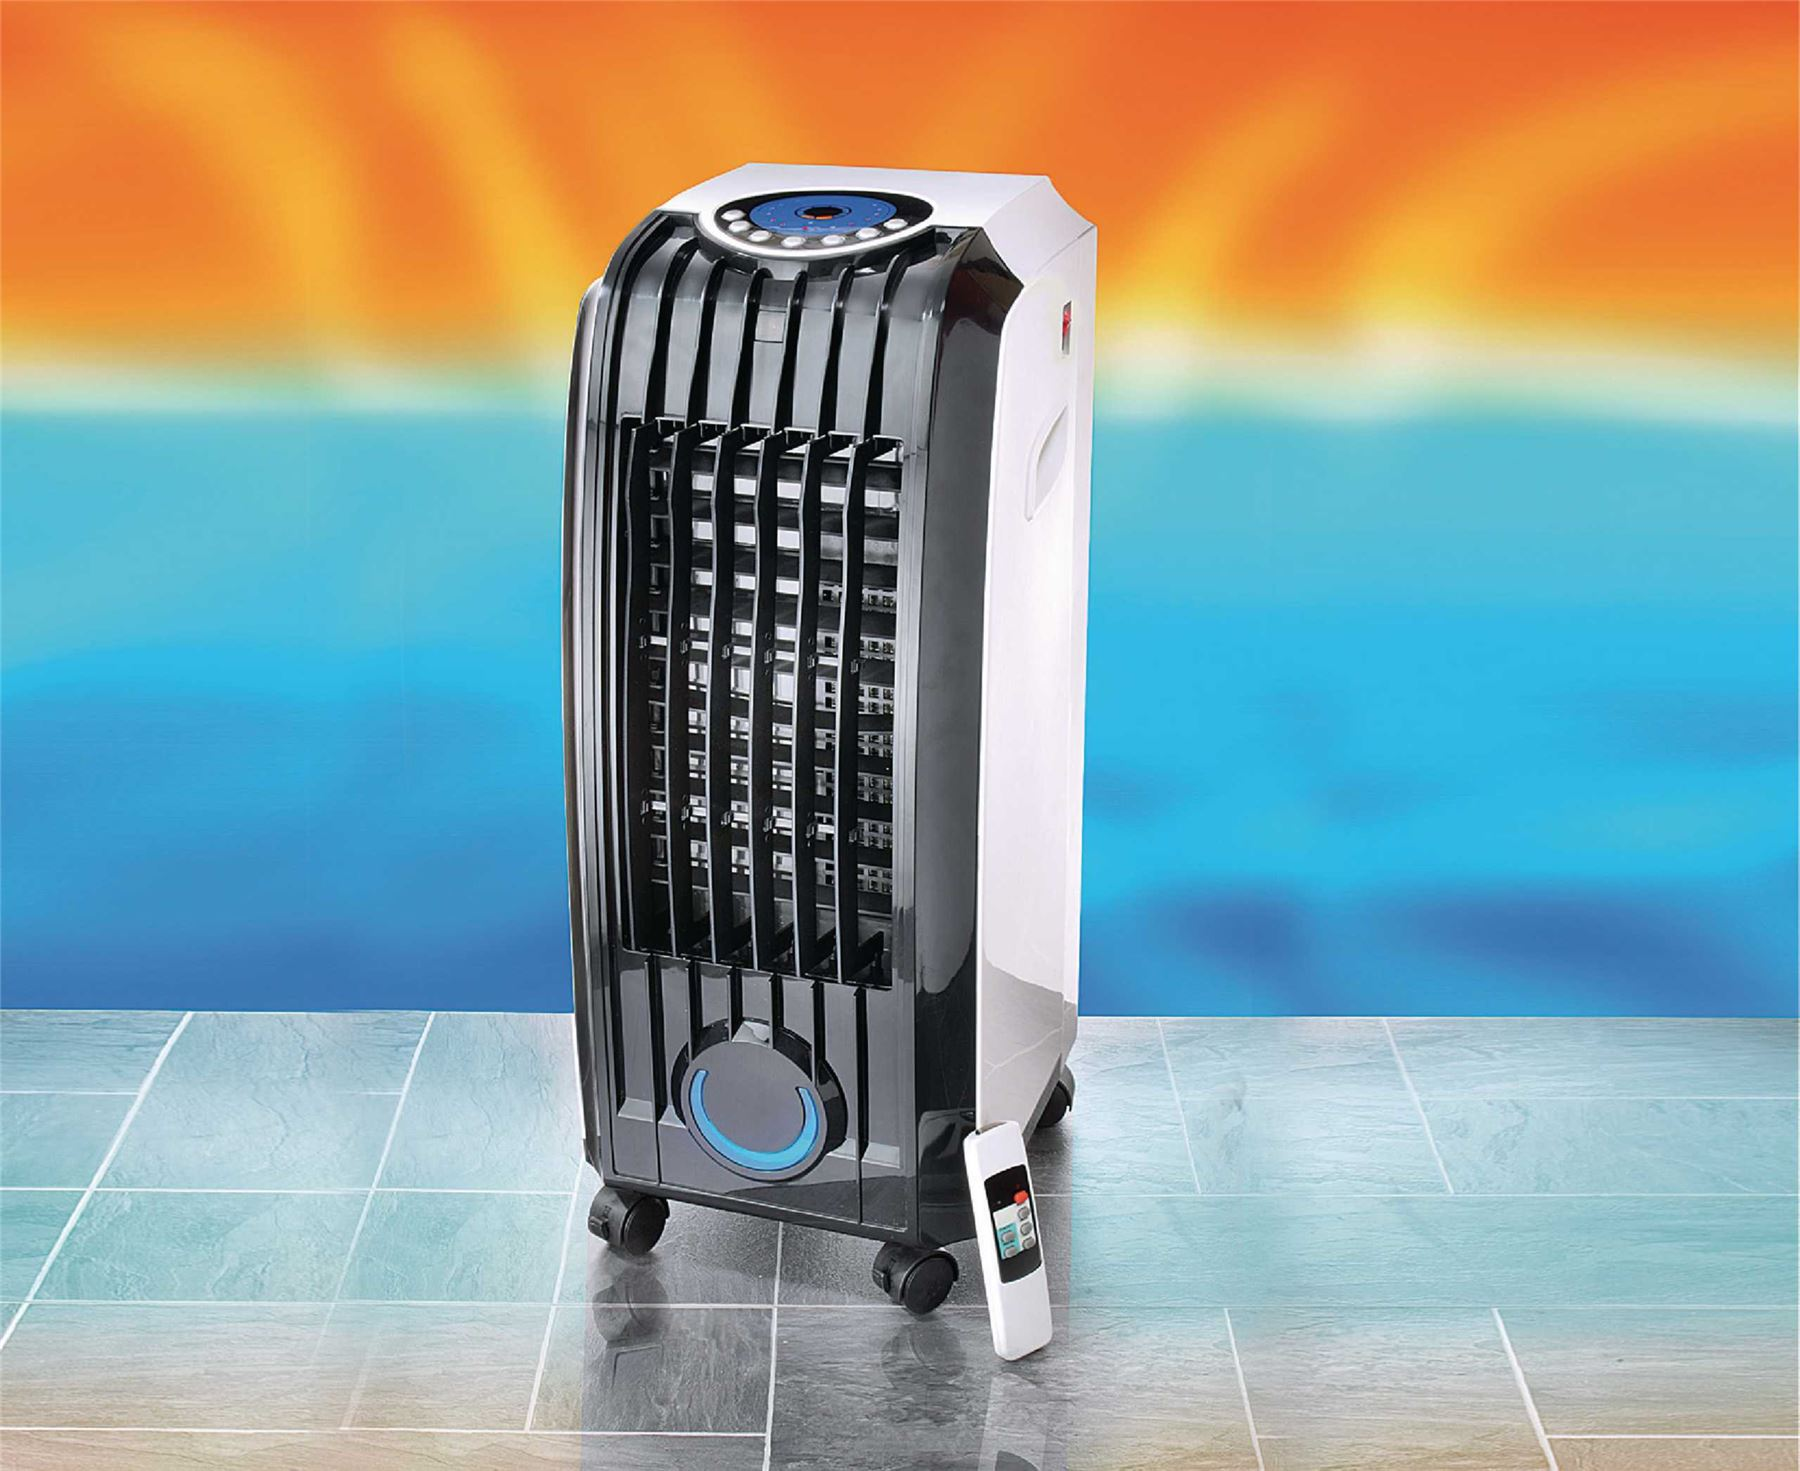 Evaporative Air Cooling : Neostar evaporative air cooler conditioner tower fan